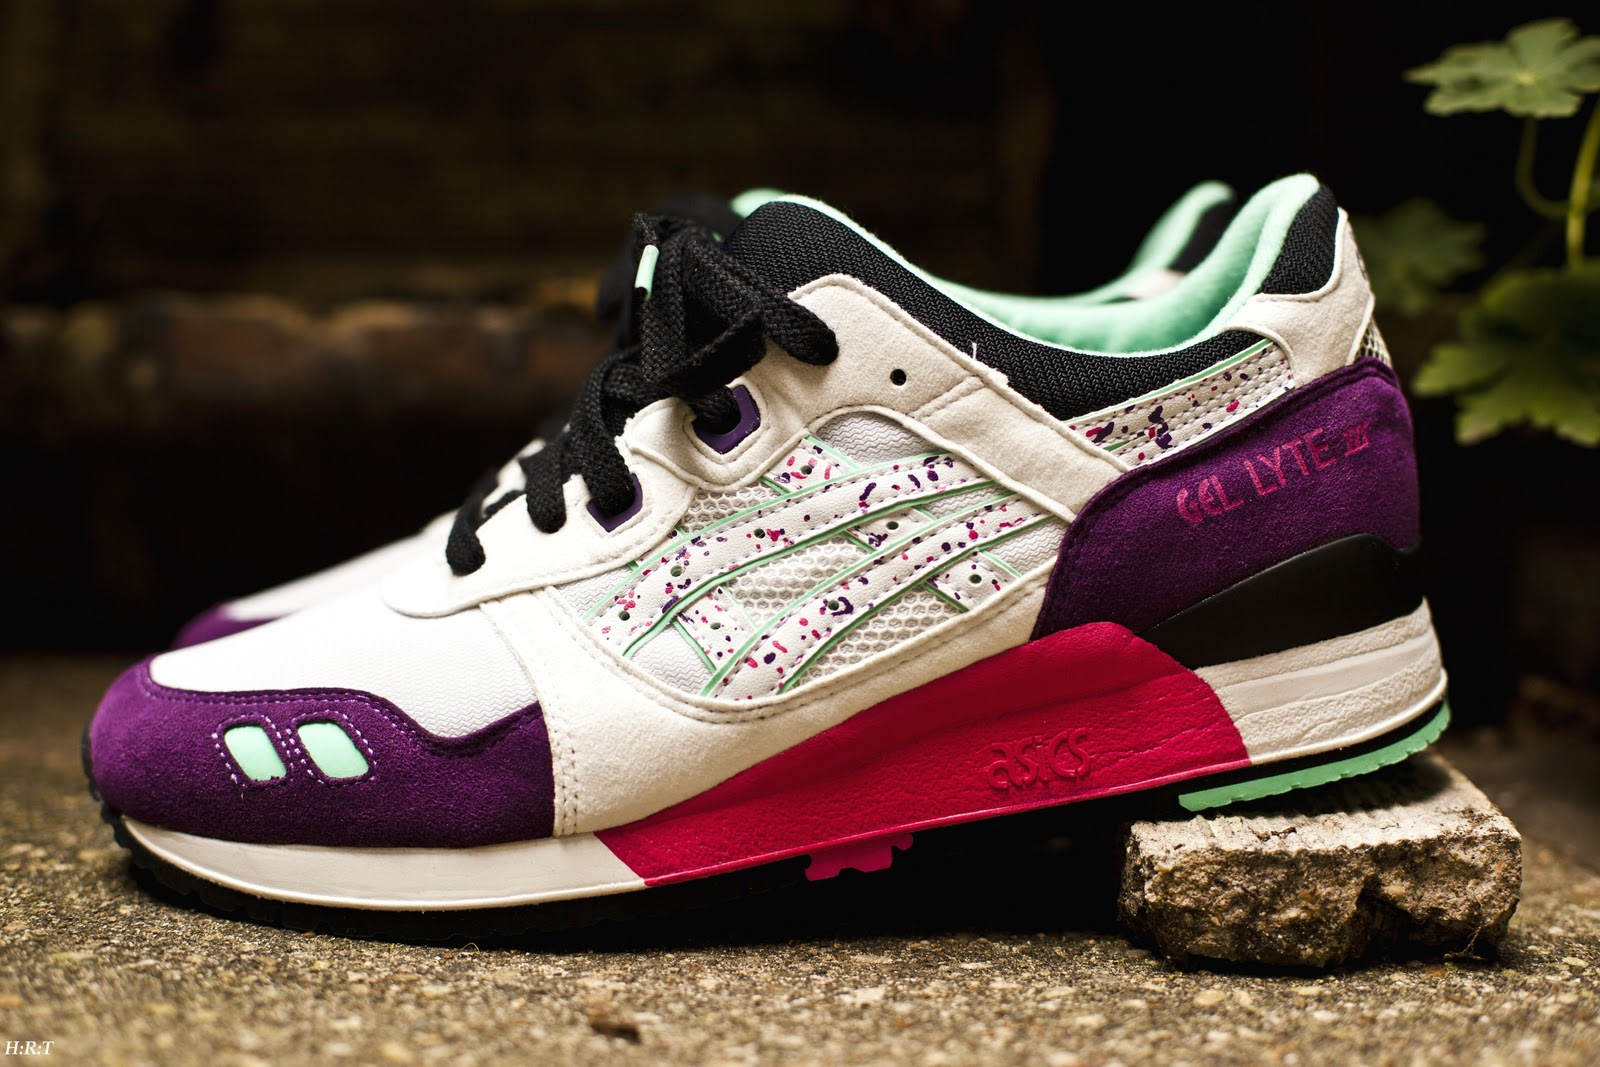 f665320a8d95 Step Into My Running Shoes  Asics Gel Lyte III x Colette x LaMJC